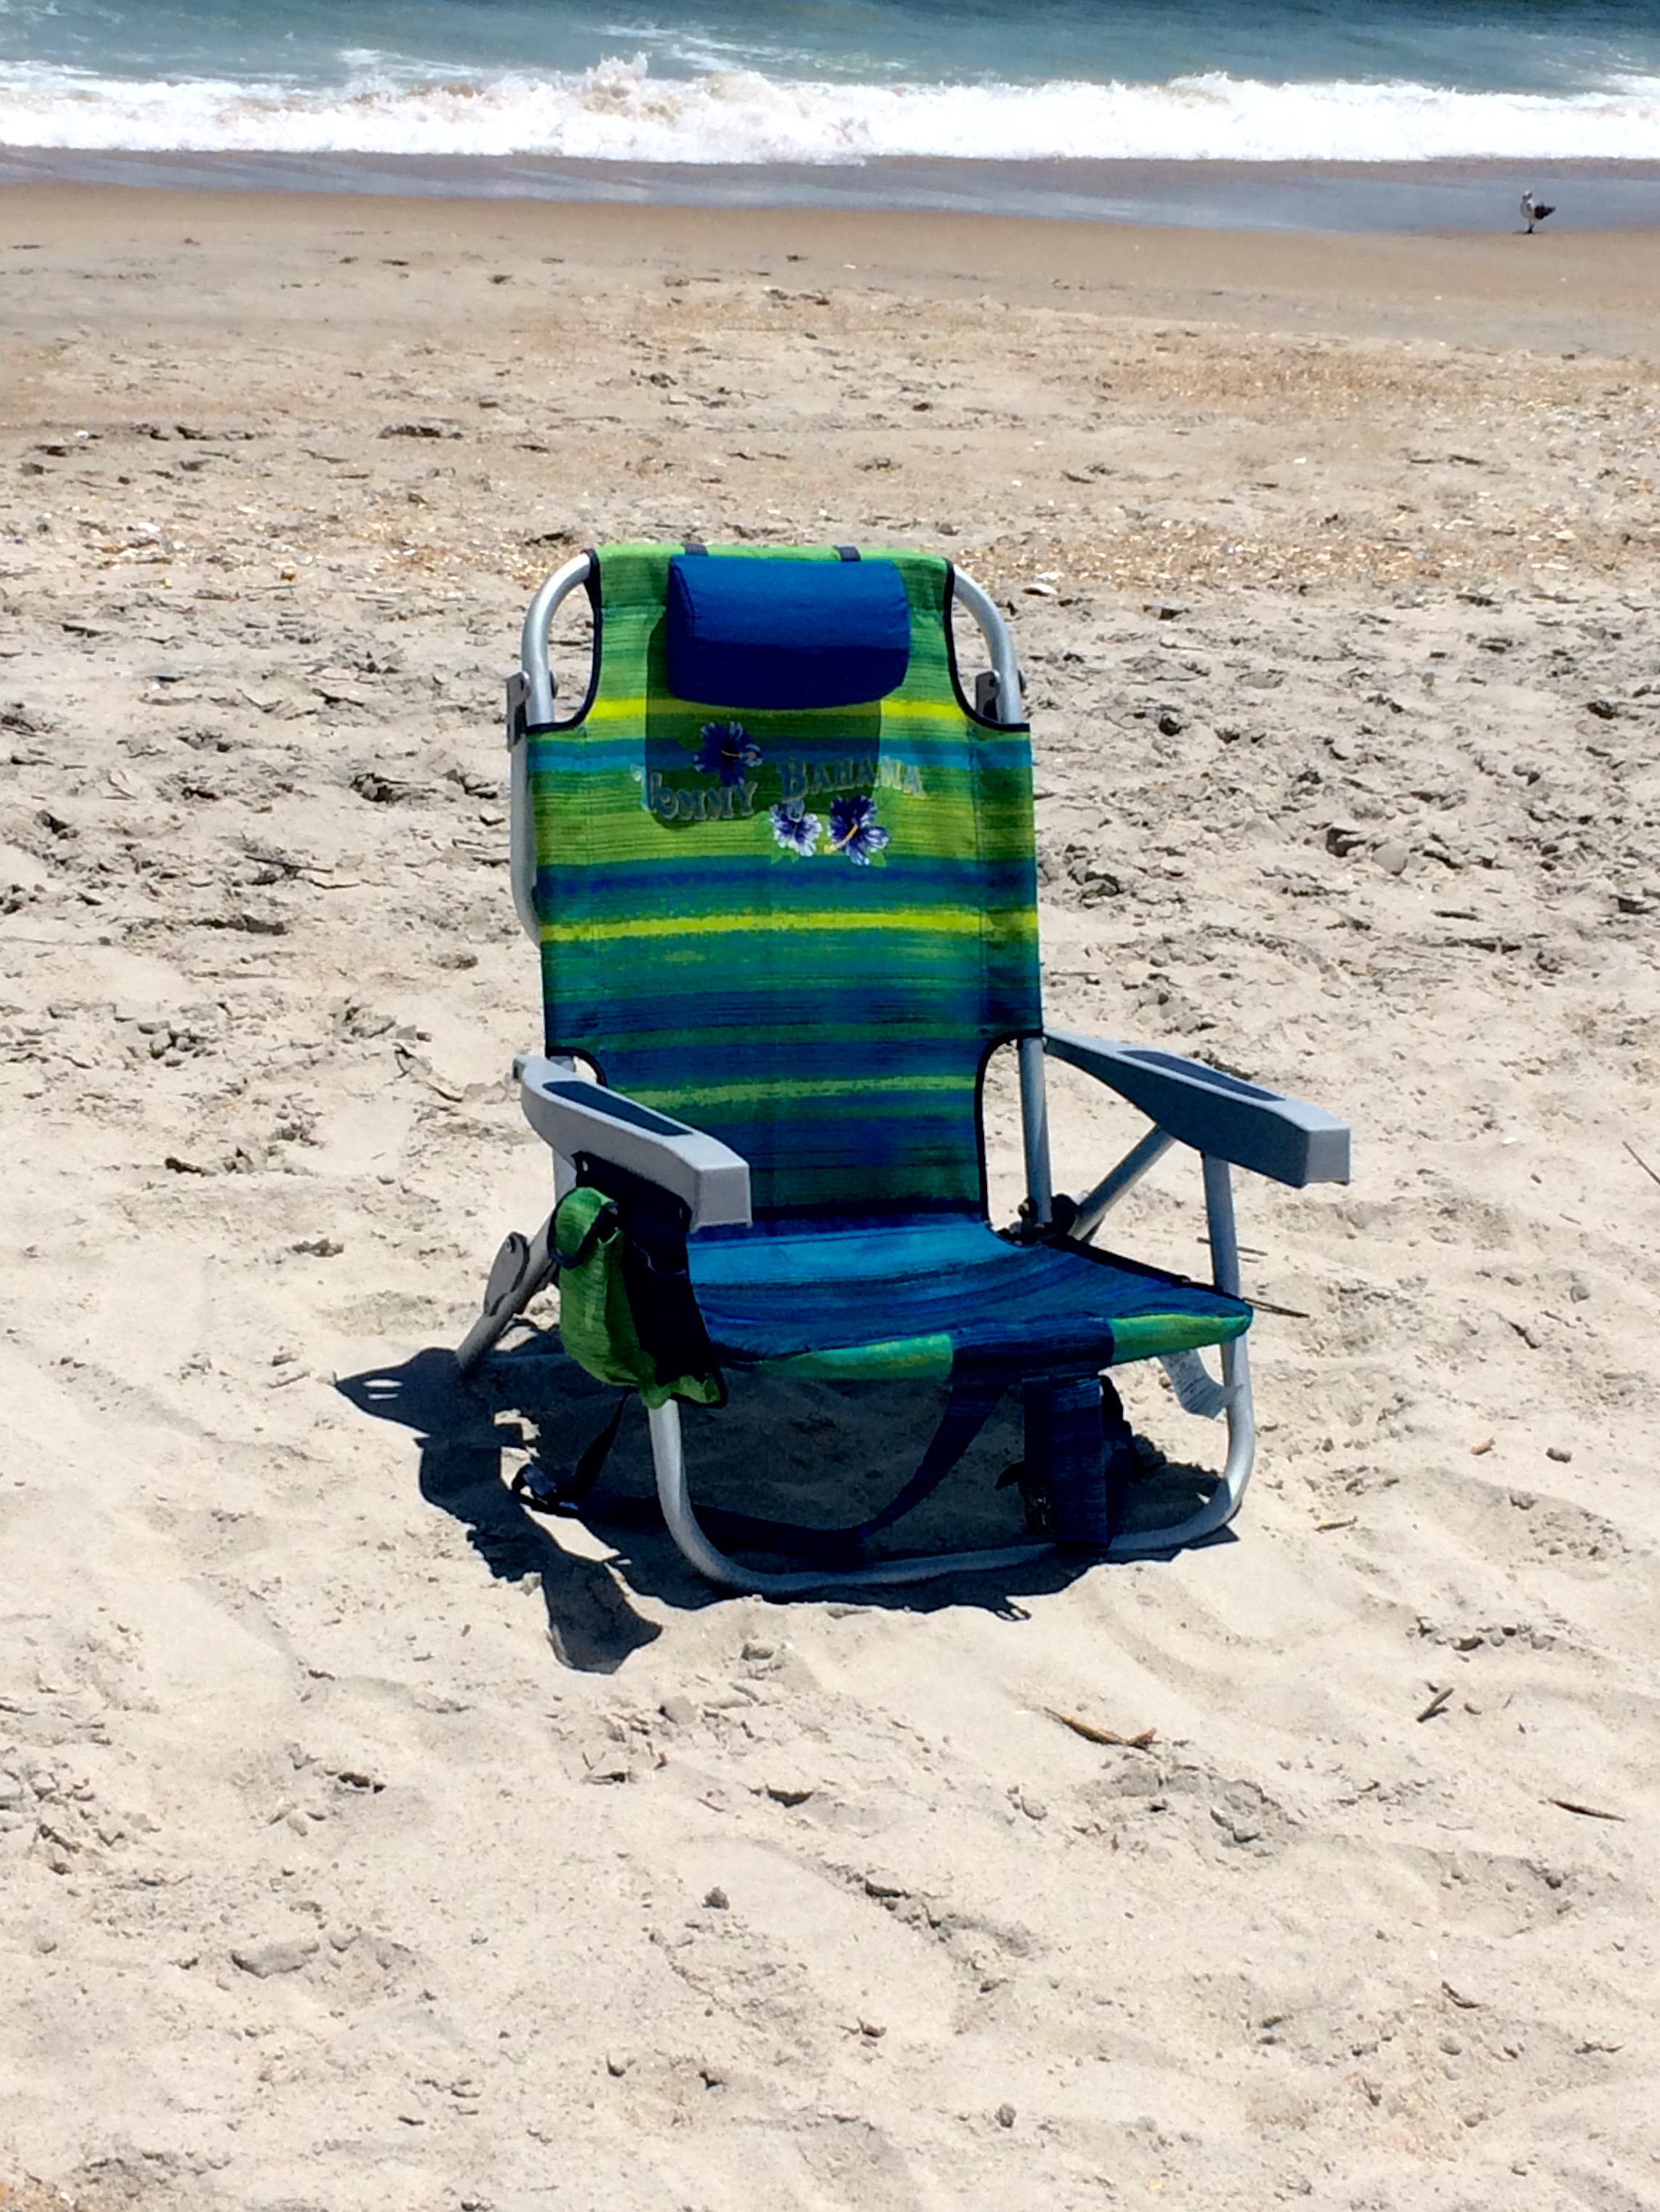 Backpack Beach Chair Wrightsville Beach Chair Umbrella Cabana